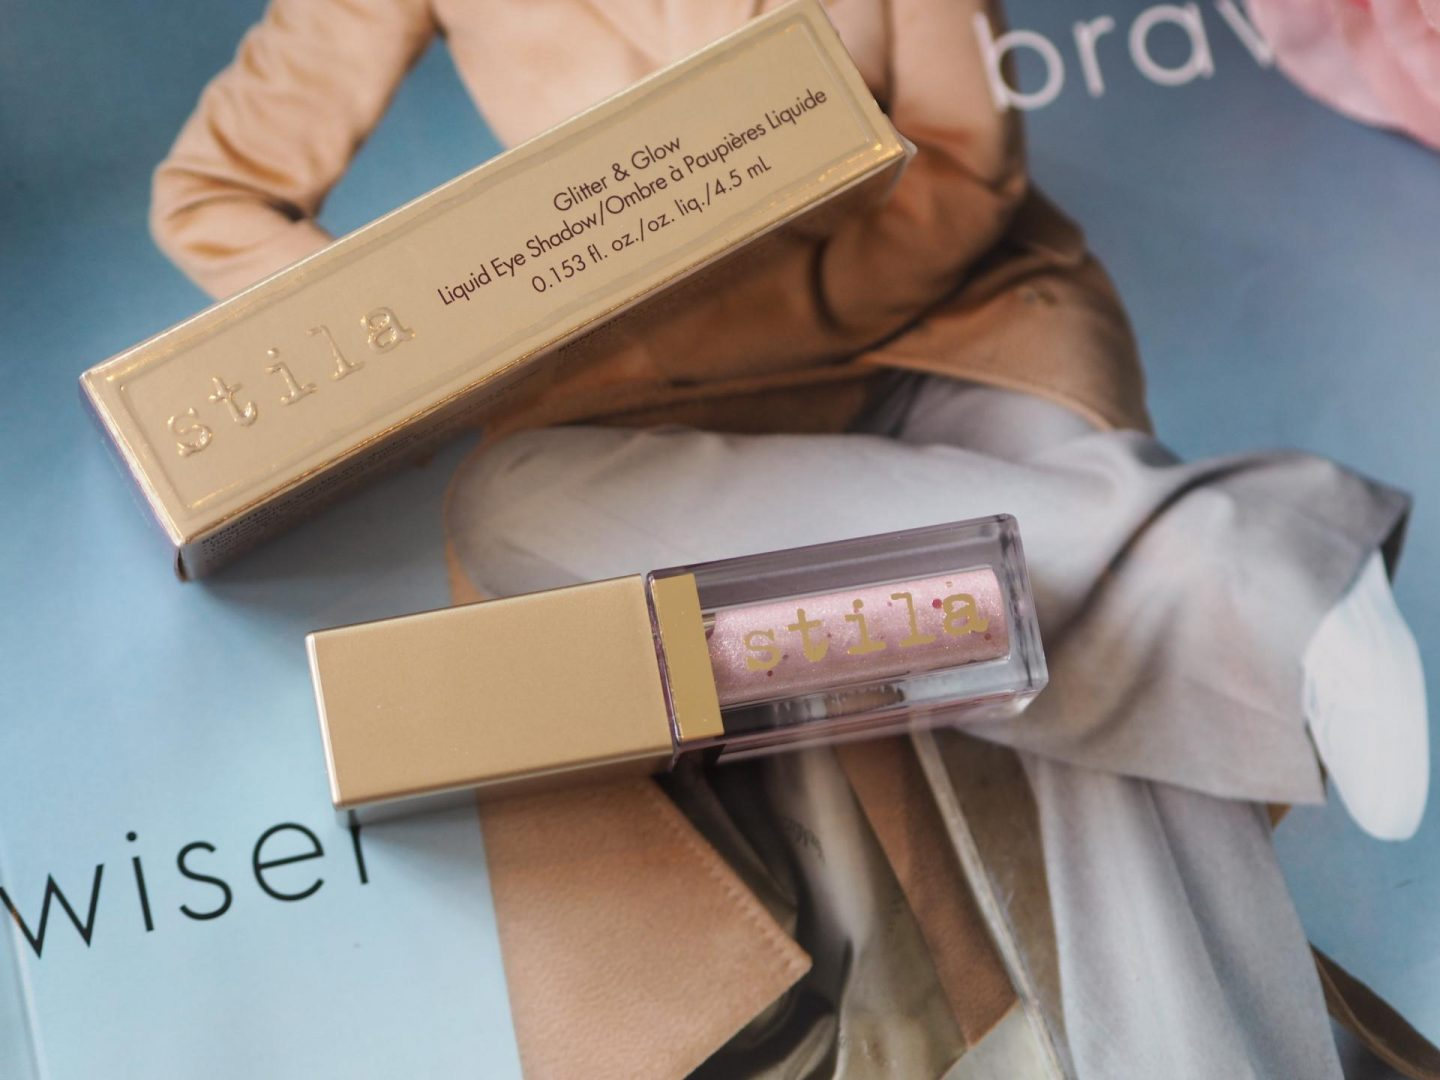 Top Luxe Make-up - Product: Stila Glitter & Glow Liquid Eyeshadow in Ballet Baby